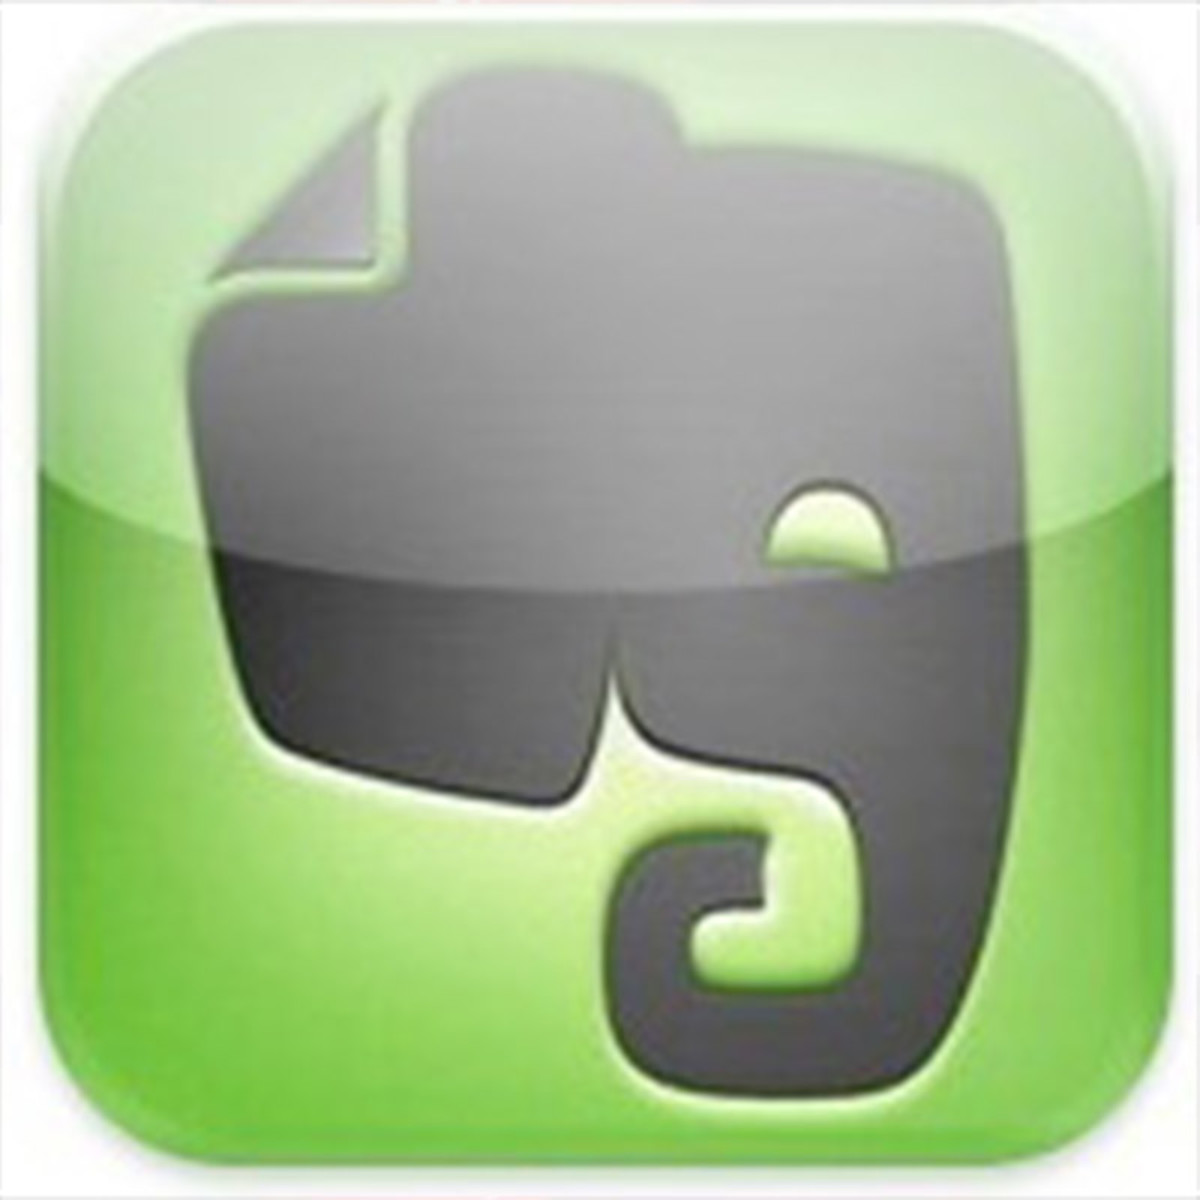 Evernote is a great App to capture meeting notes, text, photos and Web Pages using your mobile device